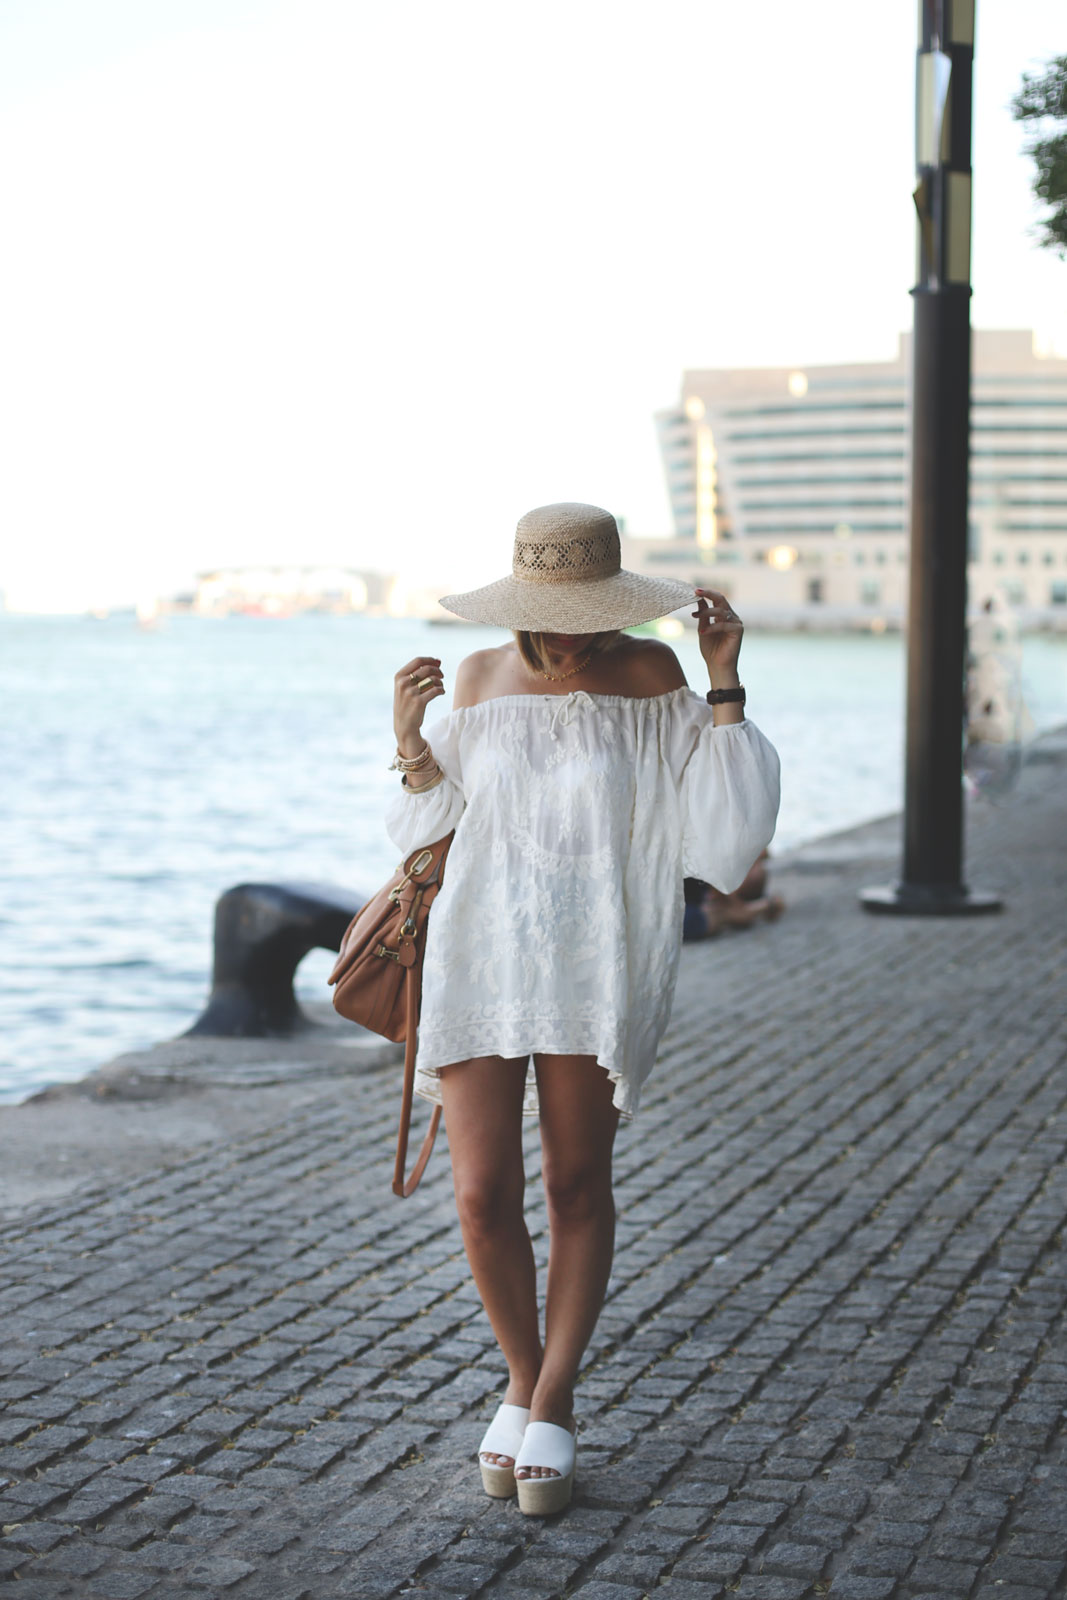 An all-white outfit with a white off-the-shoulder dress and platforms. Via Priscila Betancort Dress: Pau'la Boutique, Bag: Chloé